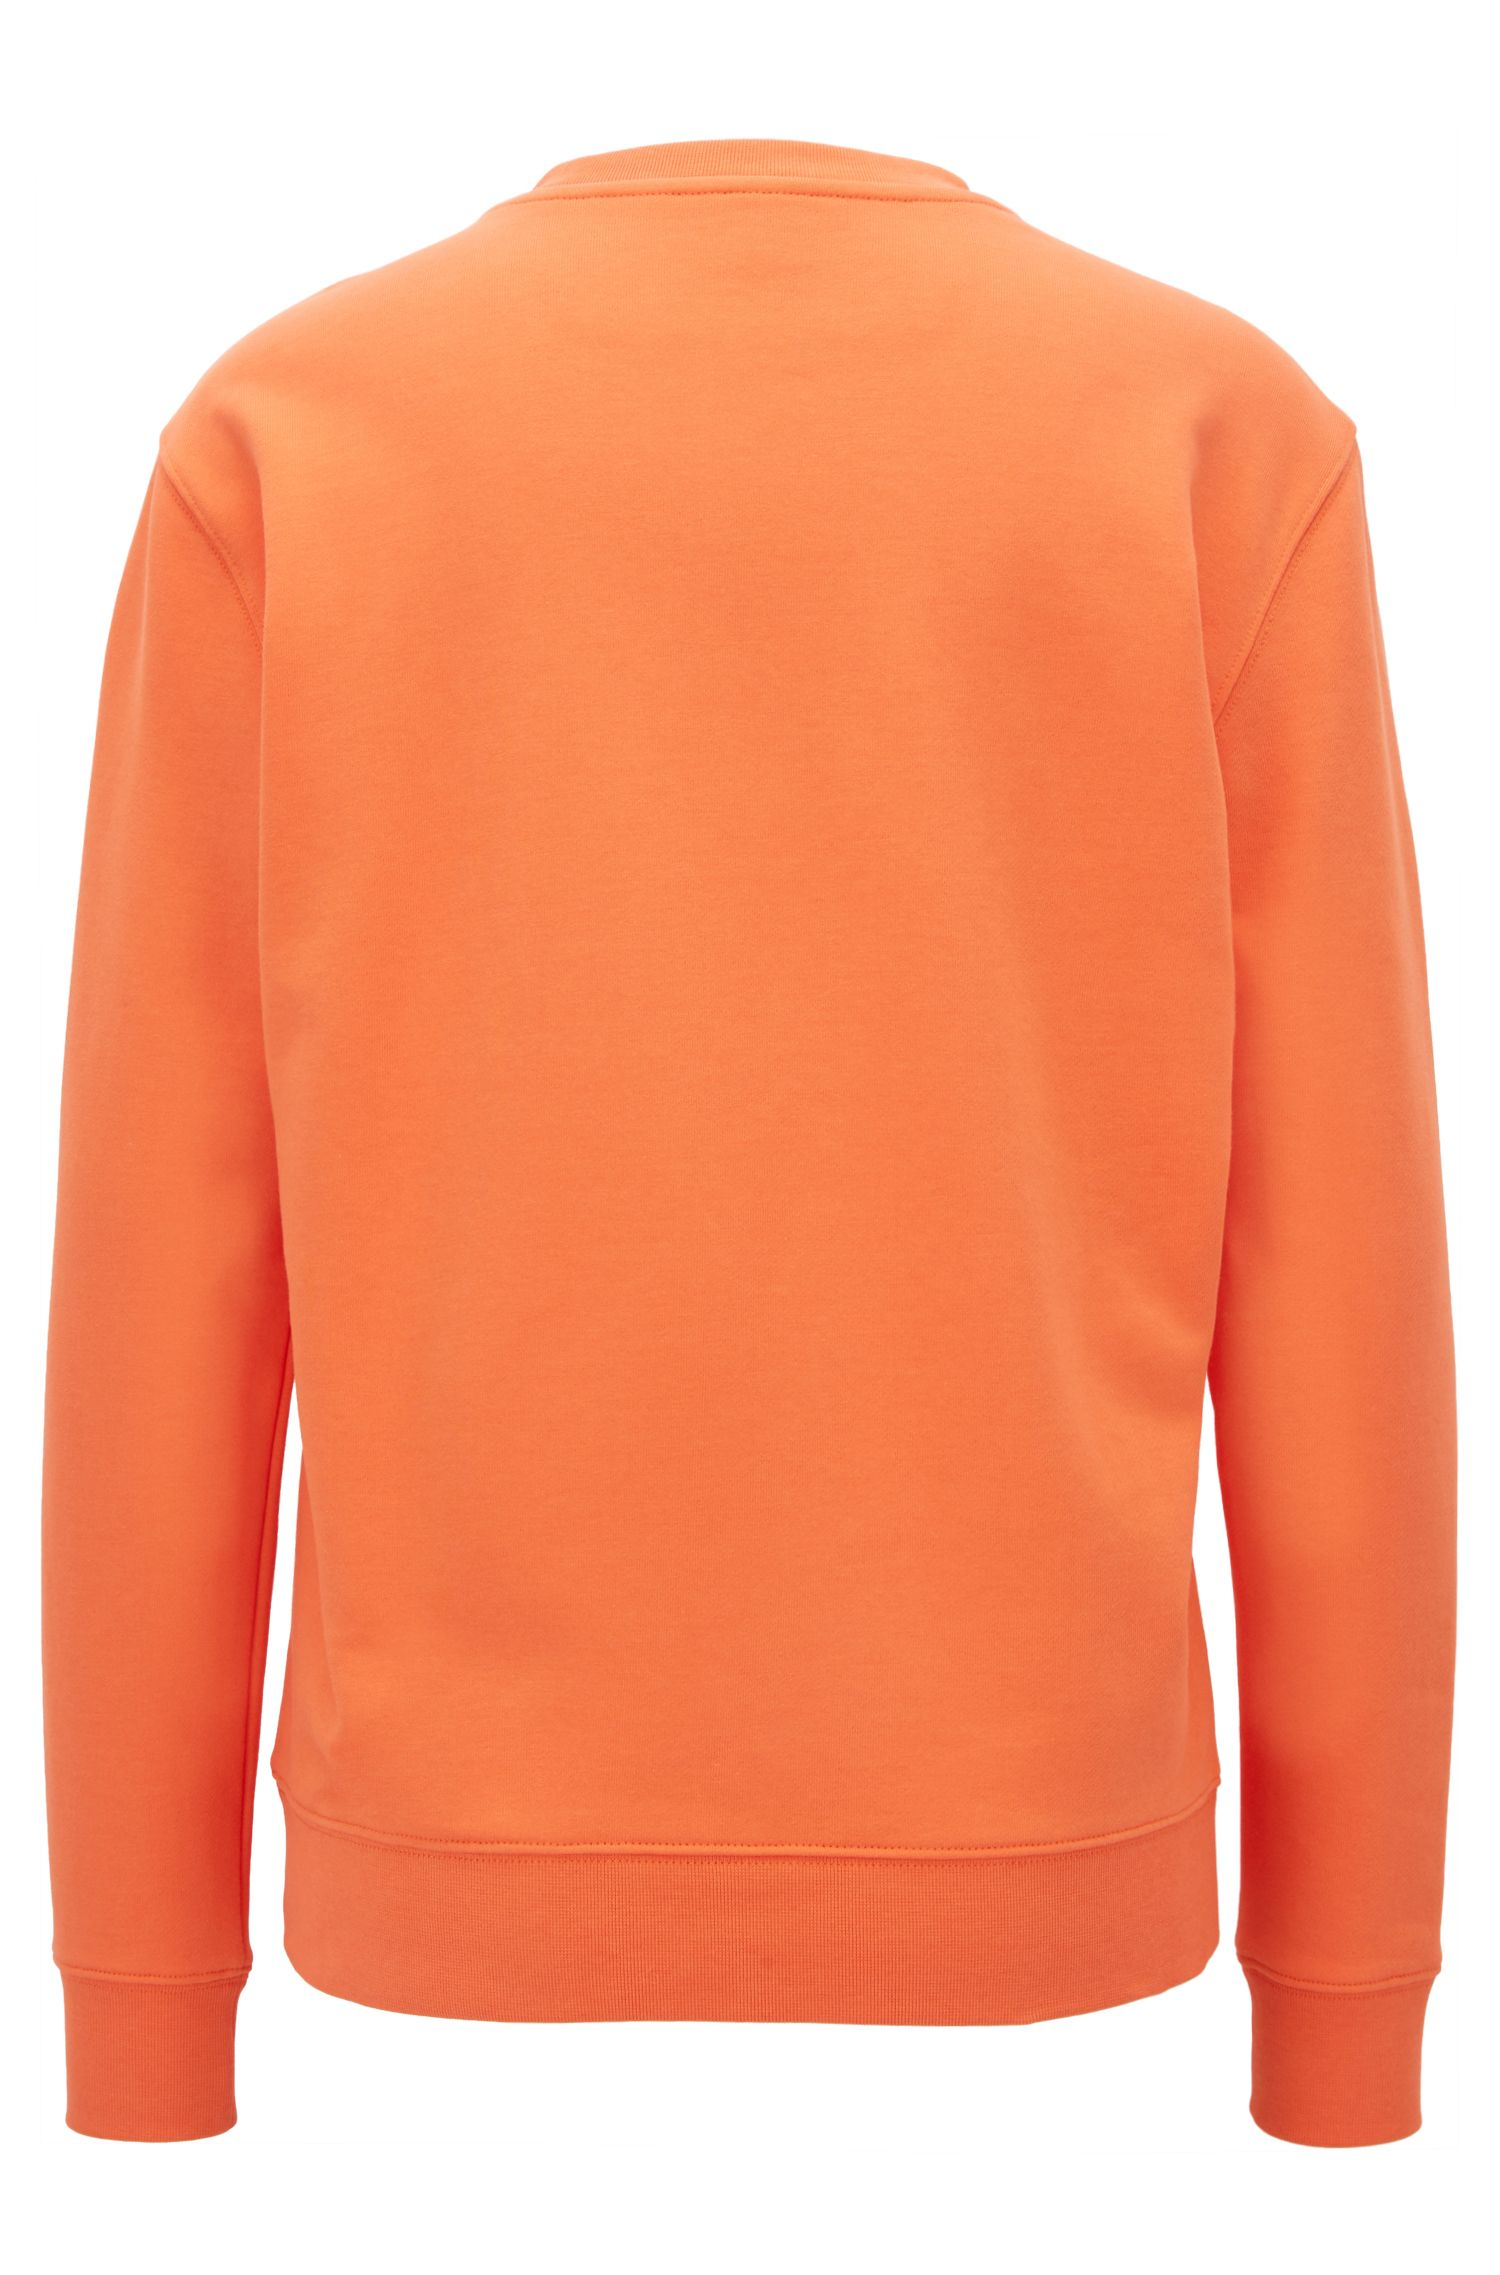 Sweat en coton molletonné French Terry à logo métallisé en relief, Orange